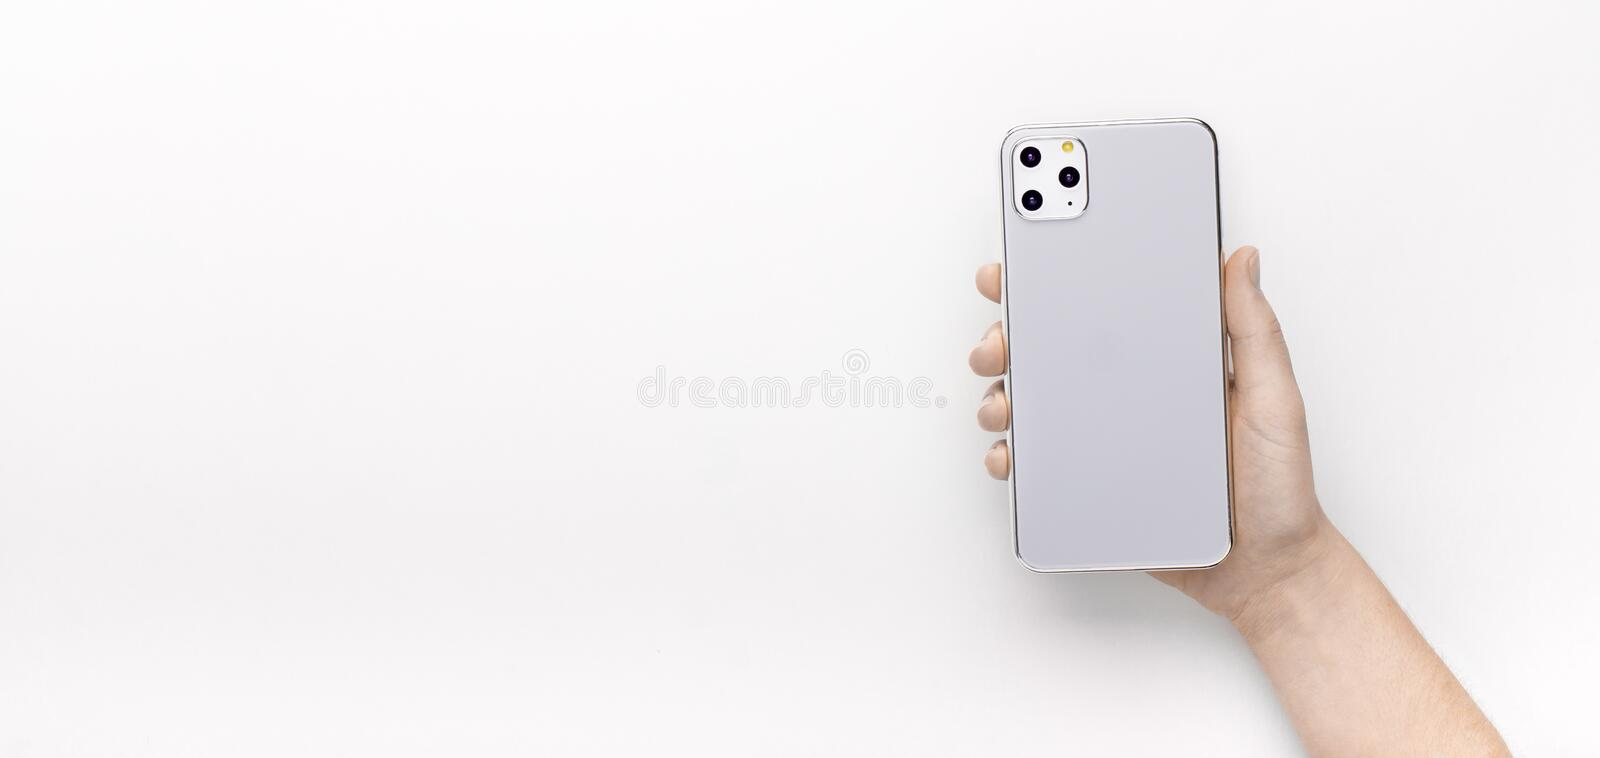 Woman holding in hand new 11 IPhone Pro with three cameras royalty free stock image